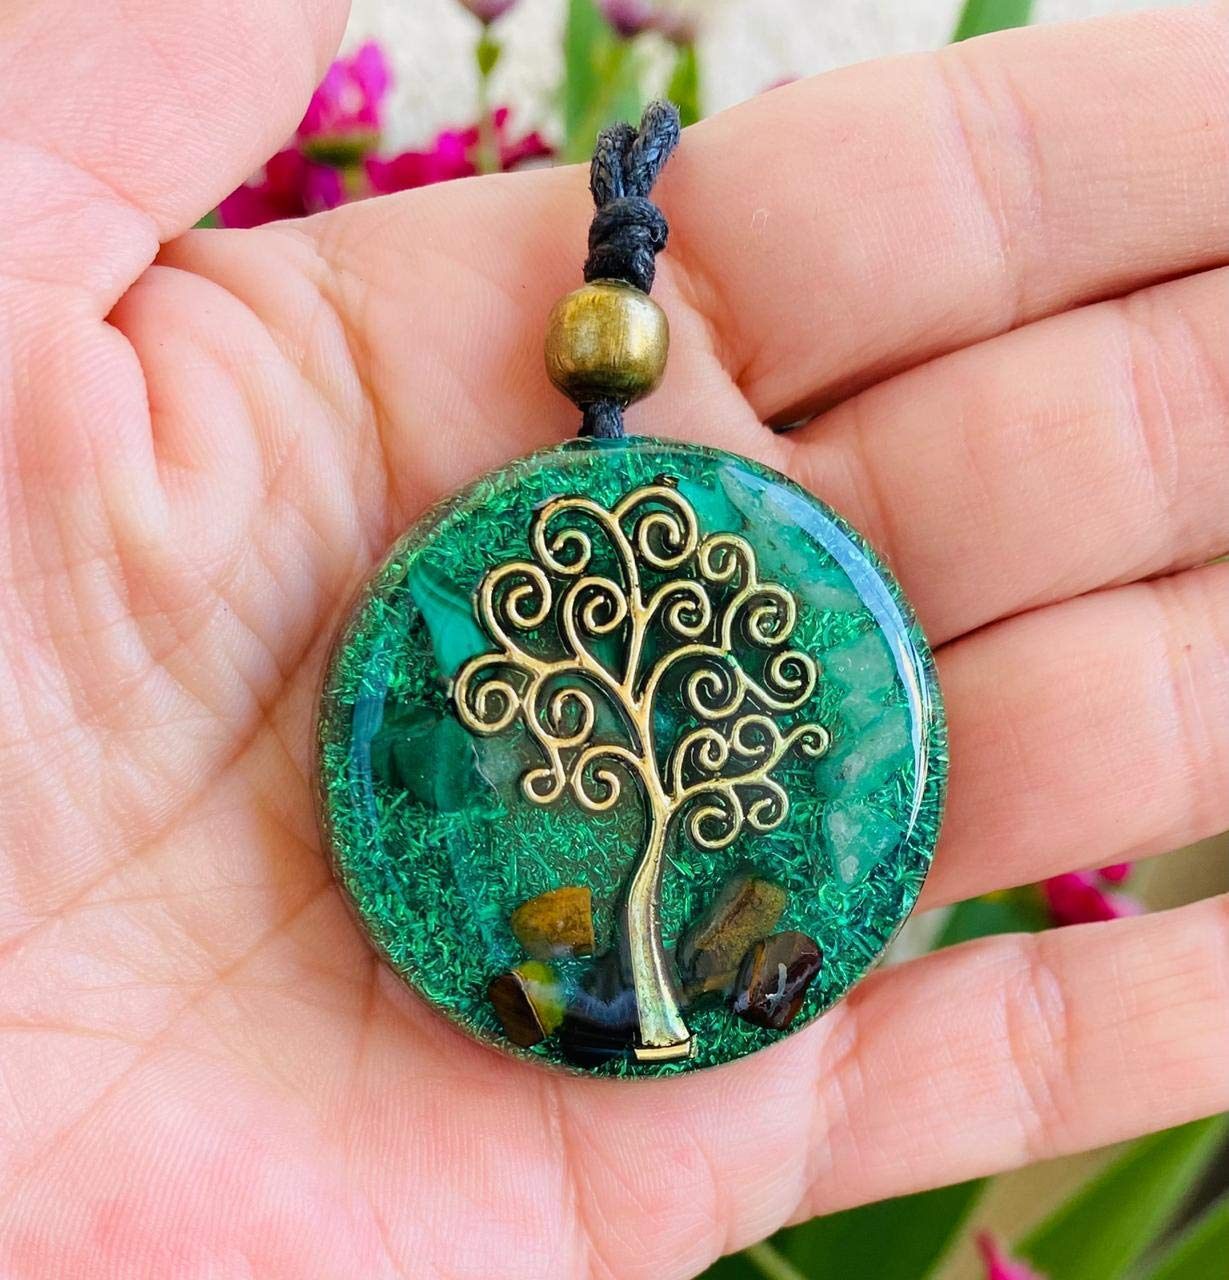 Orgone energy Malachite Orgonite Necklace /& Earring Set for Heart Chakra Taurus Birthstone,EMF protection Healing and Well-being